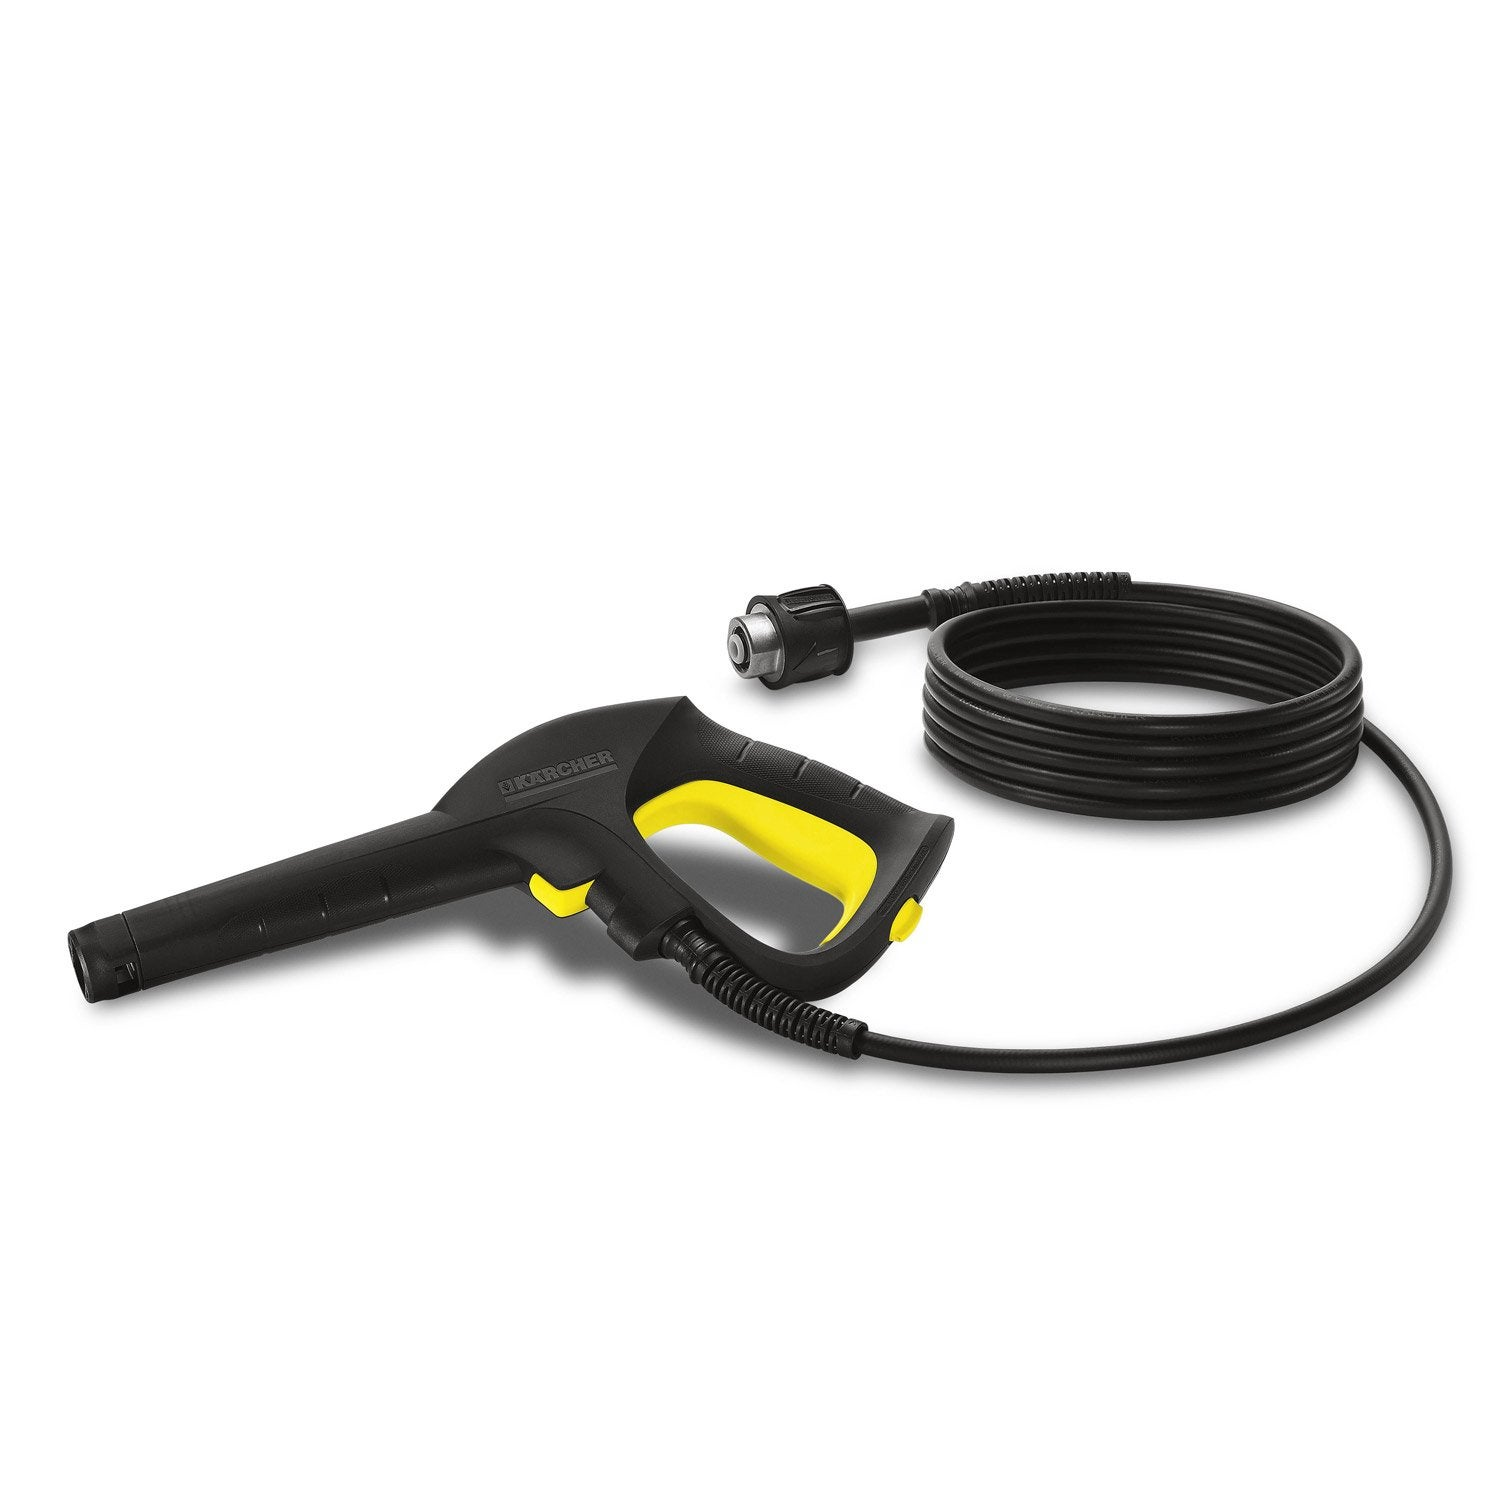 Set poign e flexible karcher leroy merlin - Prix karcher leroy merlin ...